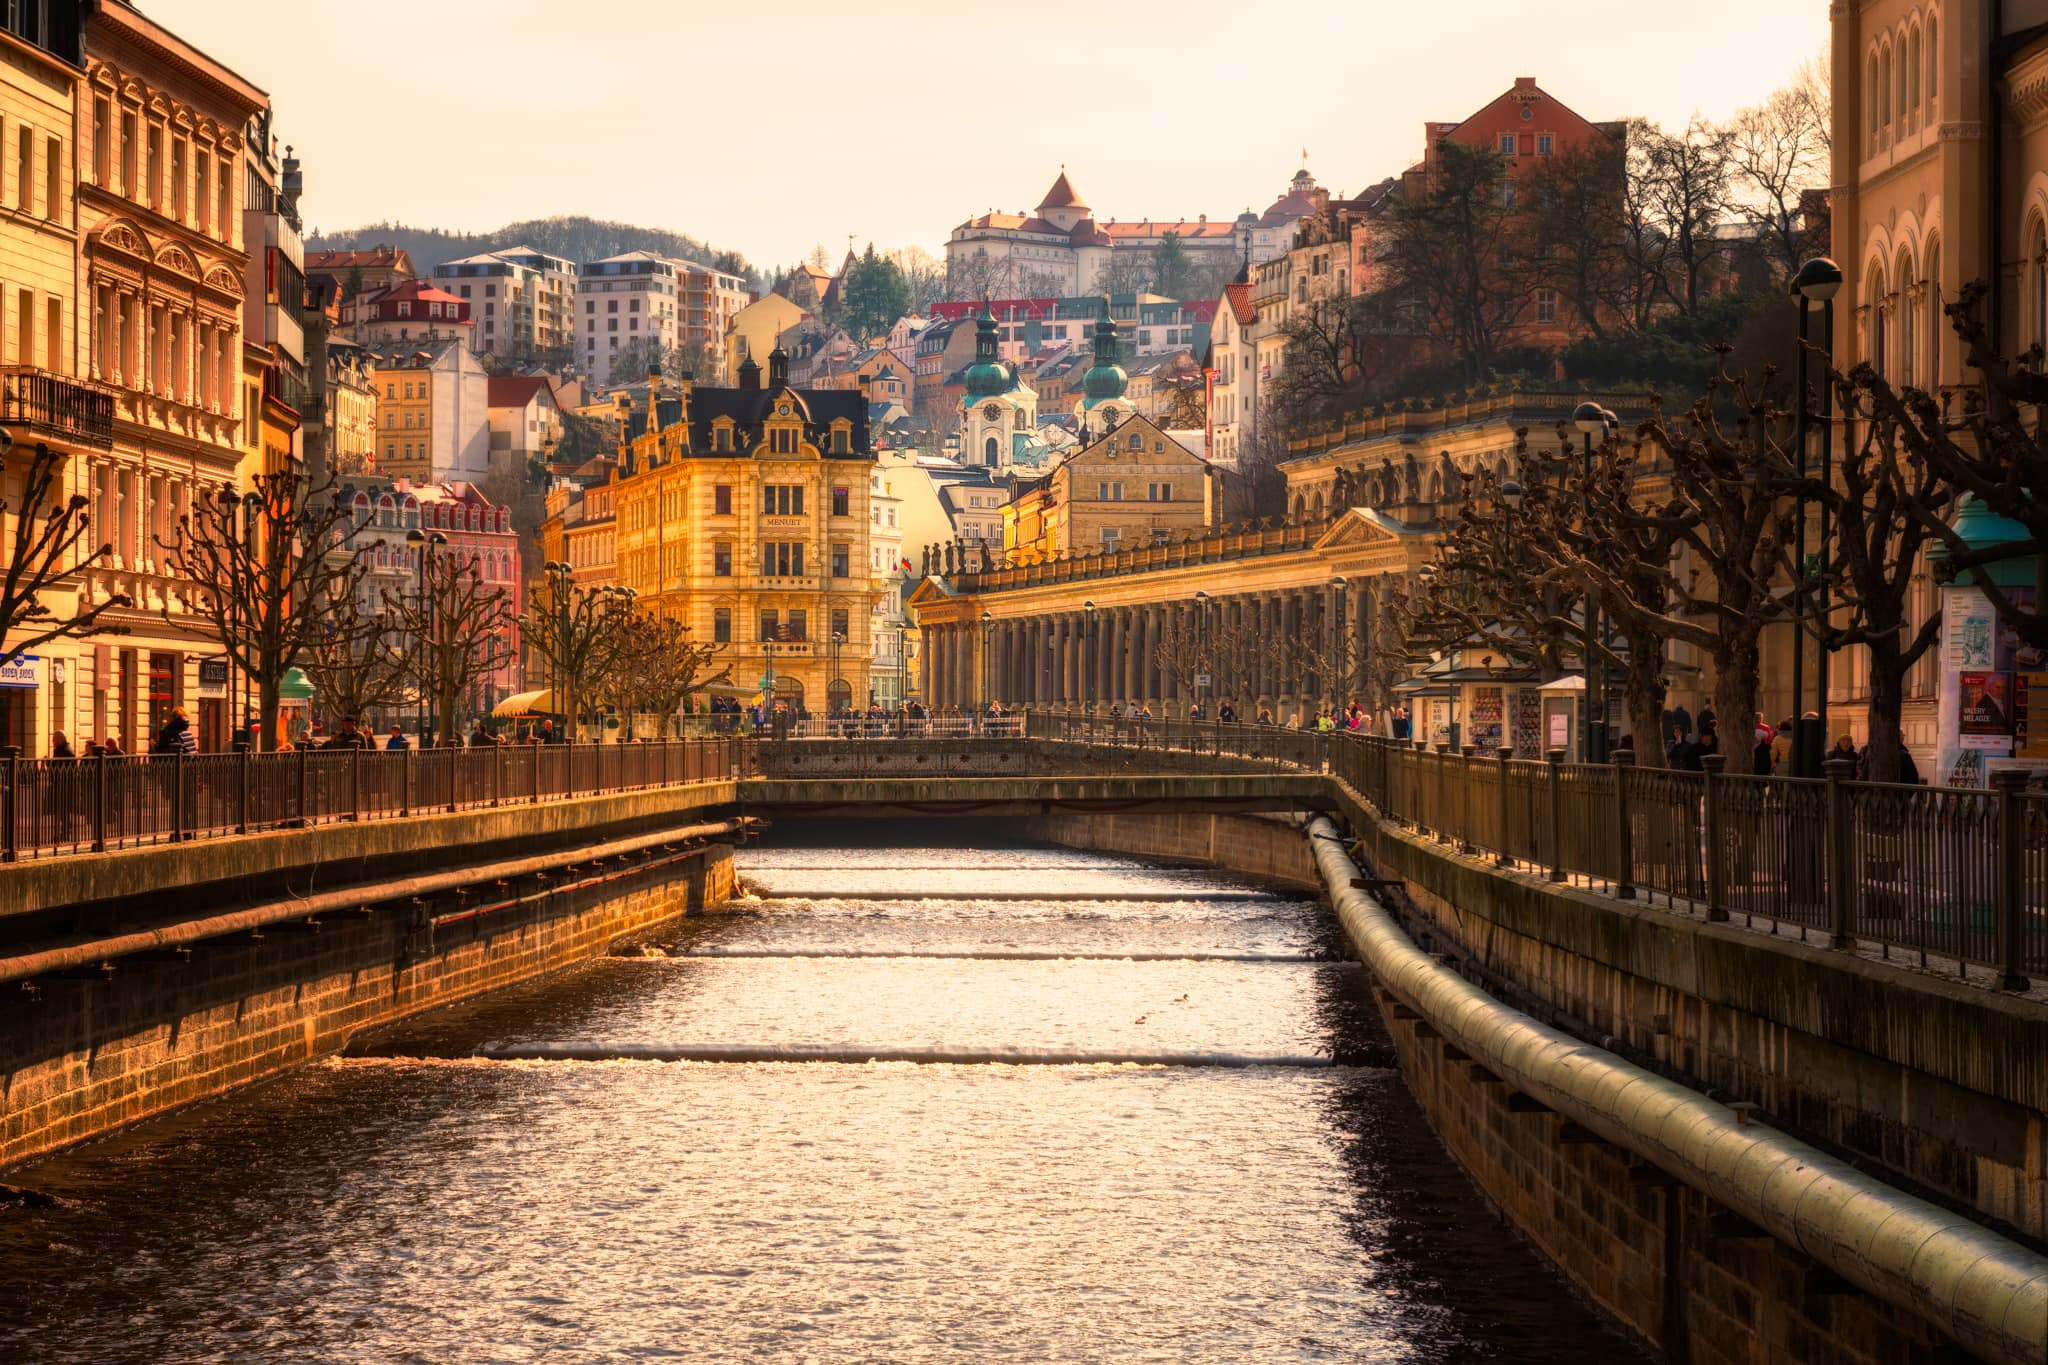 Karlovy Vary or Carlsbad – The Ultimate Czech SPA Town | Czech Republic